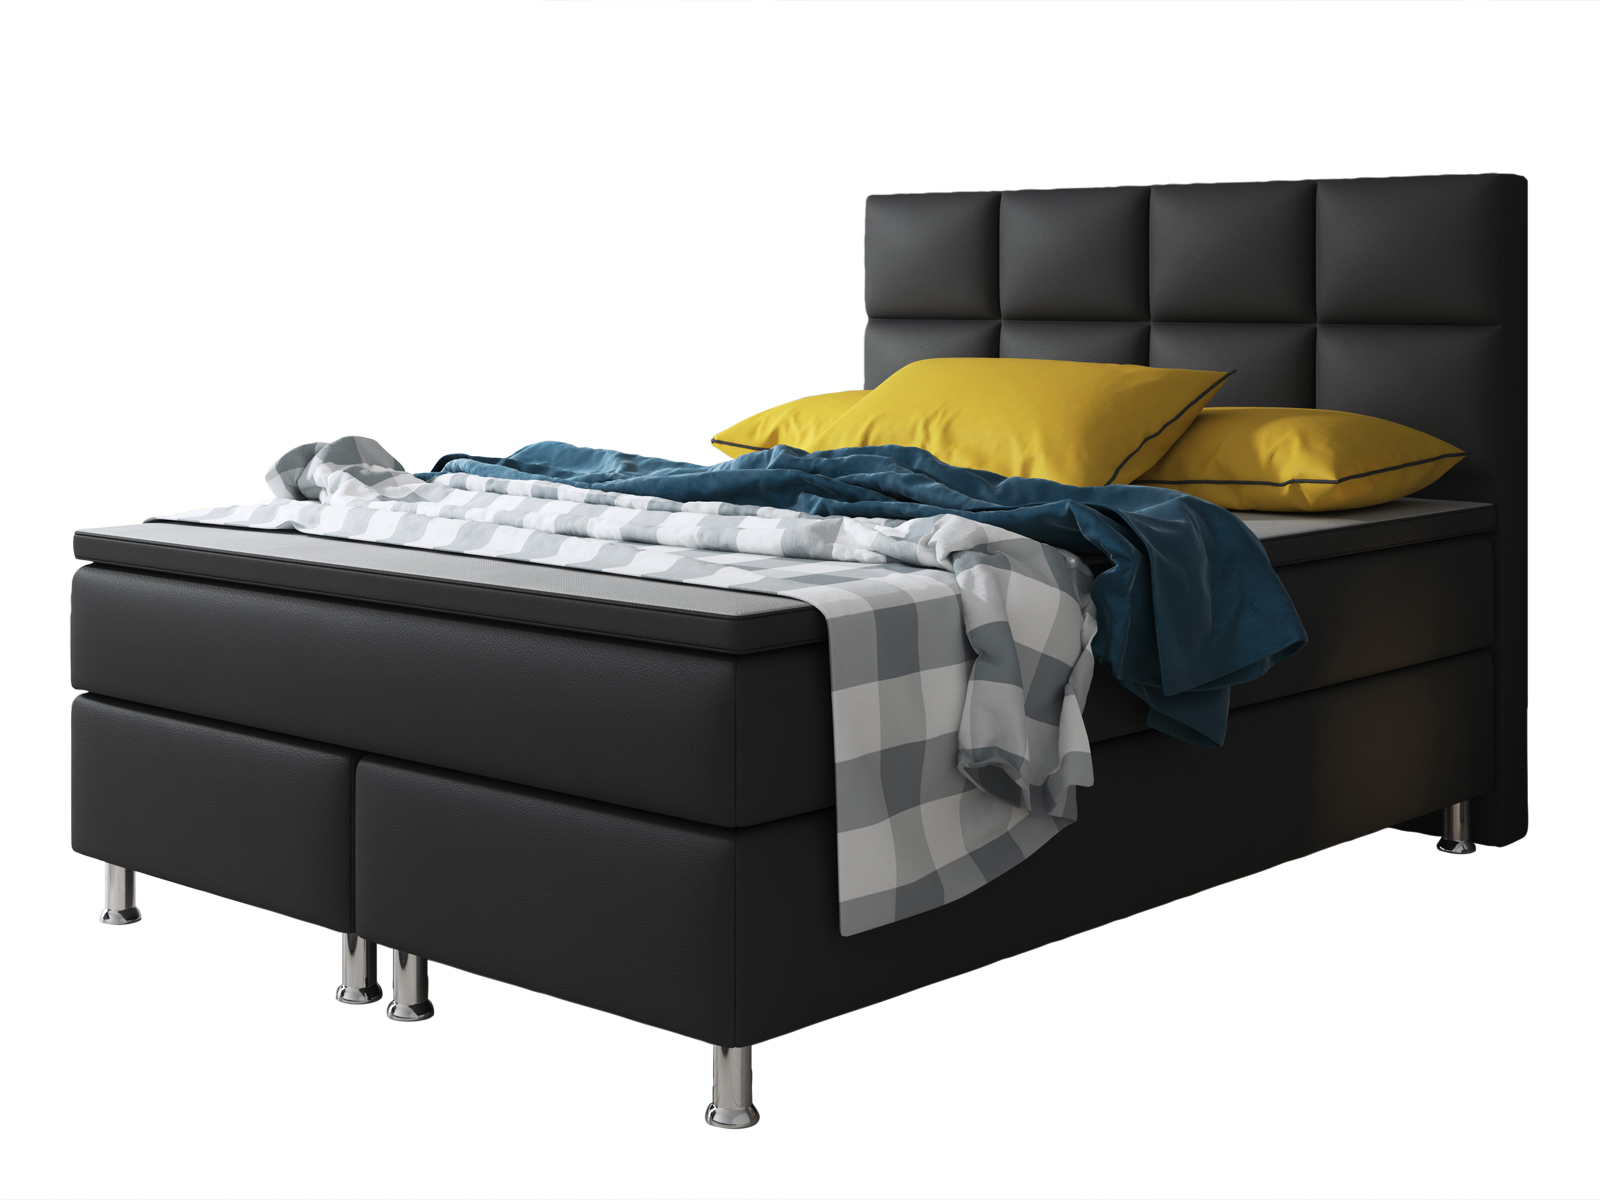 boxspringbett miami 140x200 cm kunstleder schwarz schlafen boxspringbetten. Black Bedroom Furniture Sets. Home Design Ideas